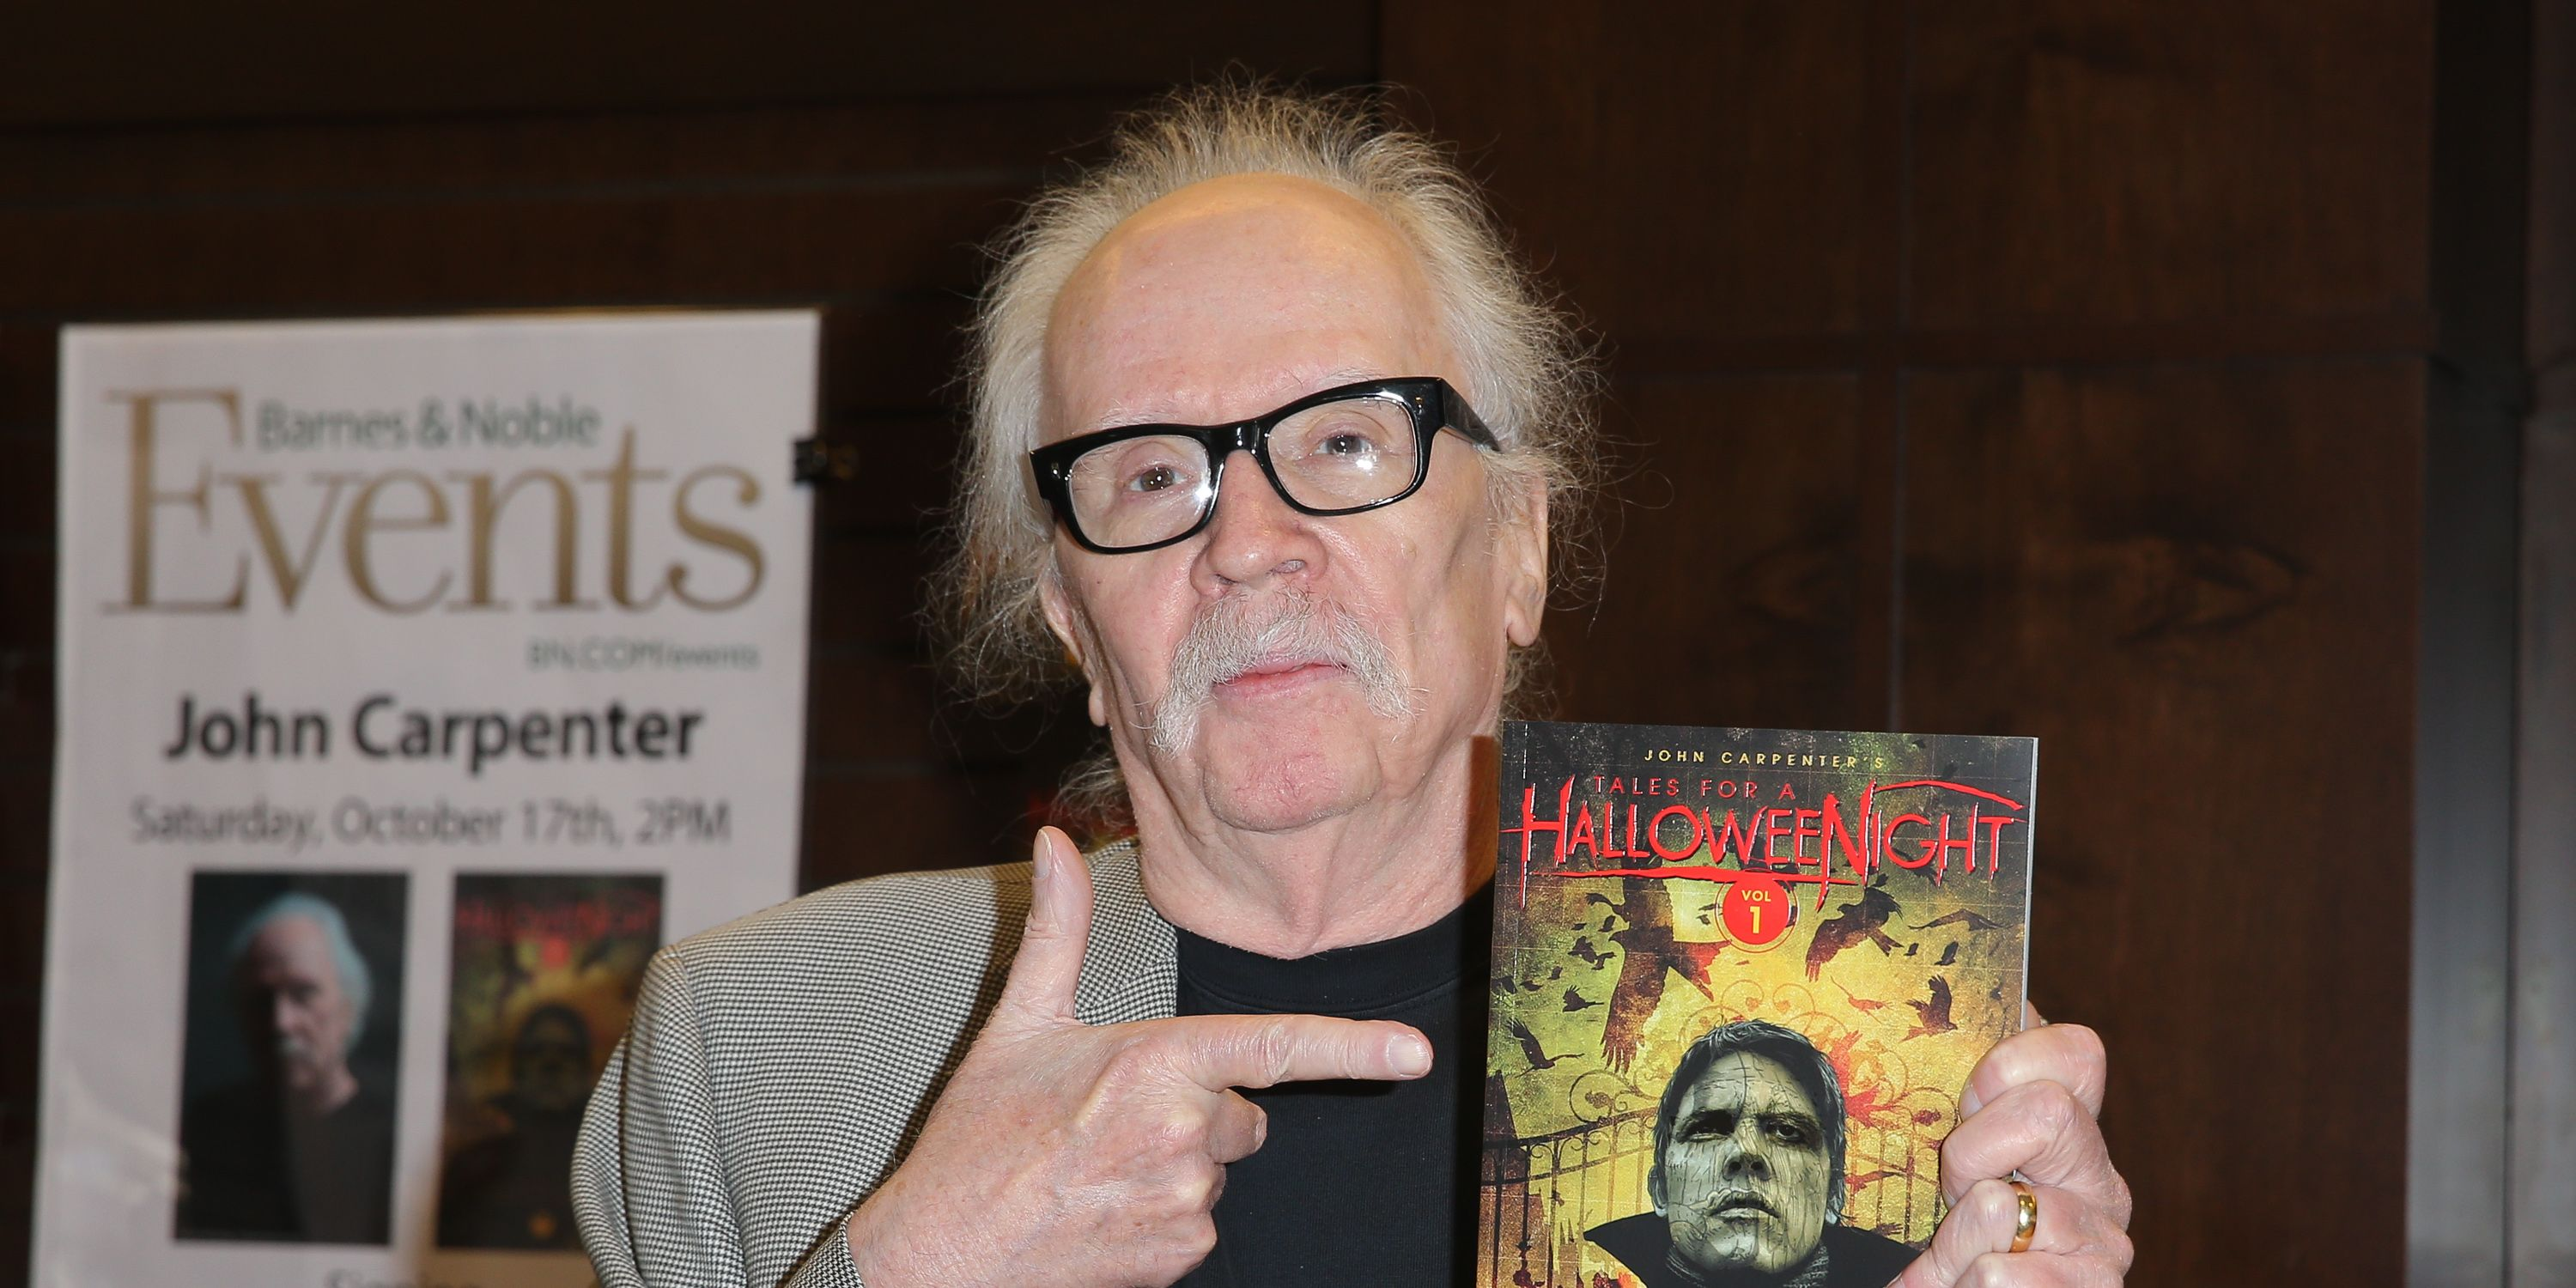 John Carpenter Book Signing For 'John Carpenter's Tale For A Halloween Night'